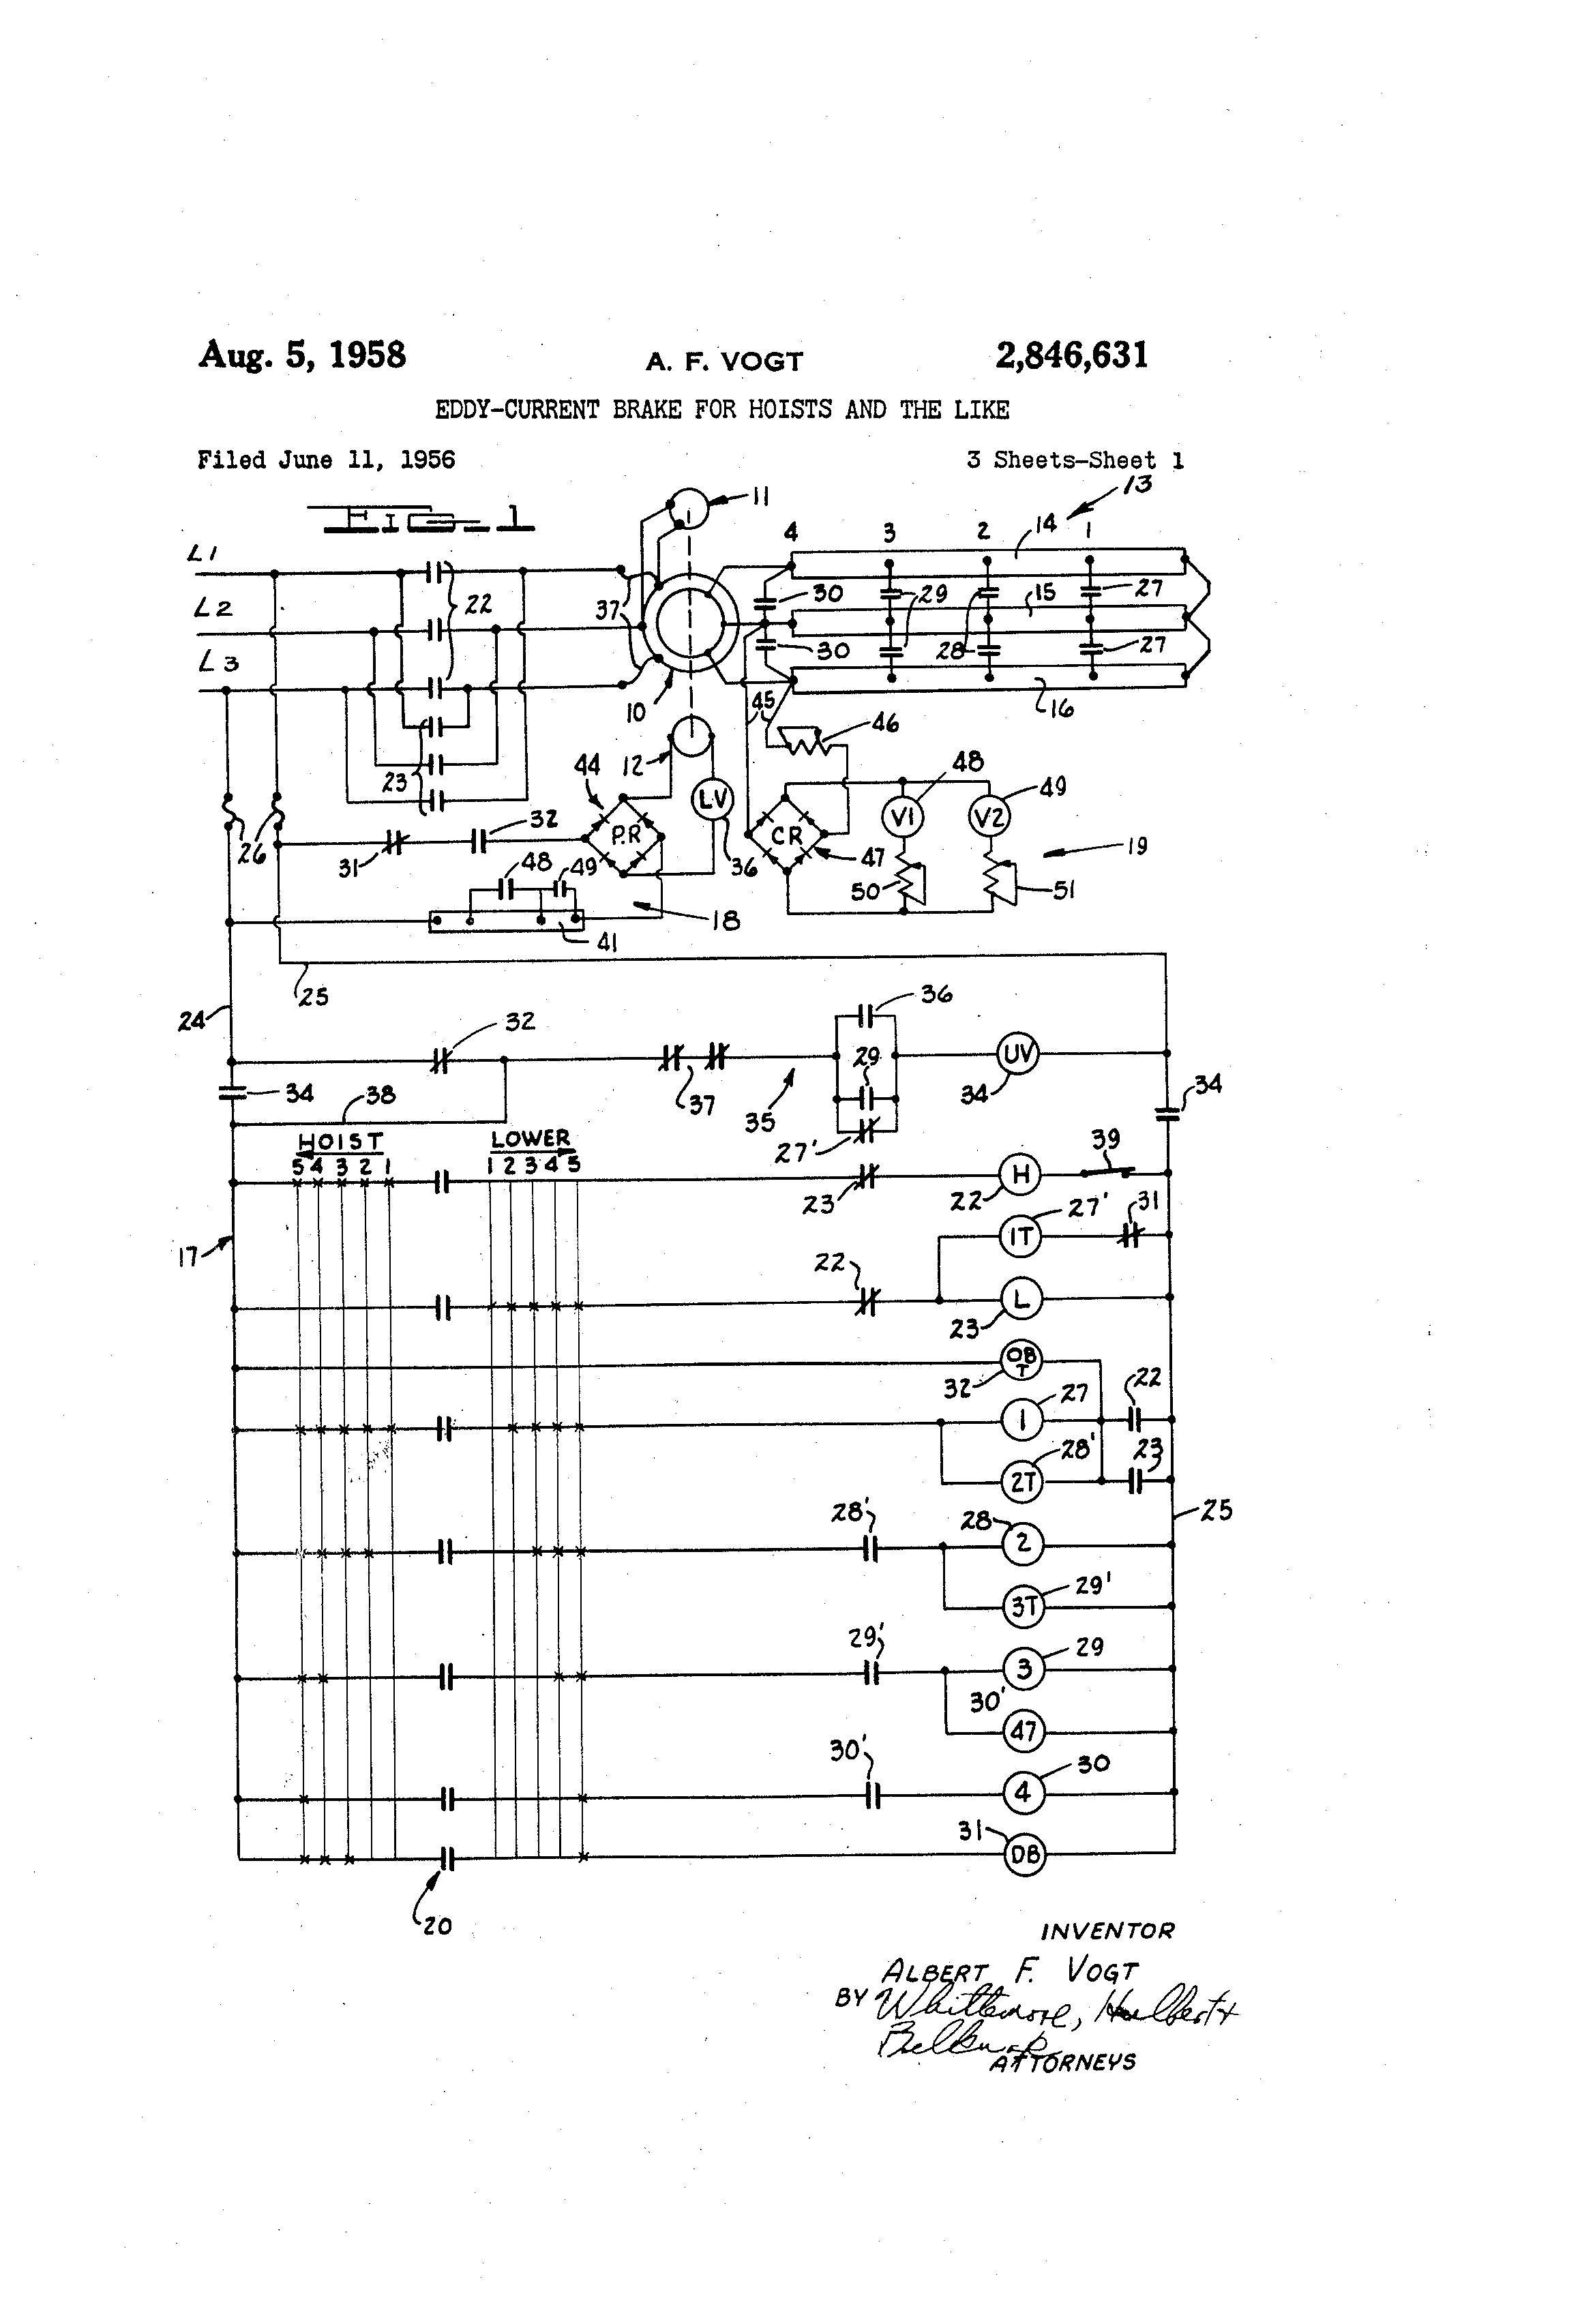 wiring diagram for square d contactor wiring image square d hoist contactor wiring diagram wiring diagram on wiring diagram for square d contactor